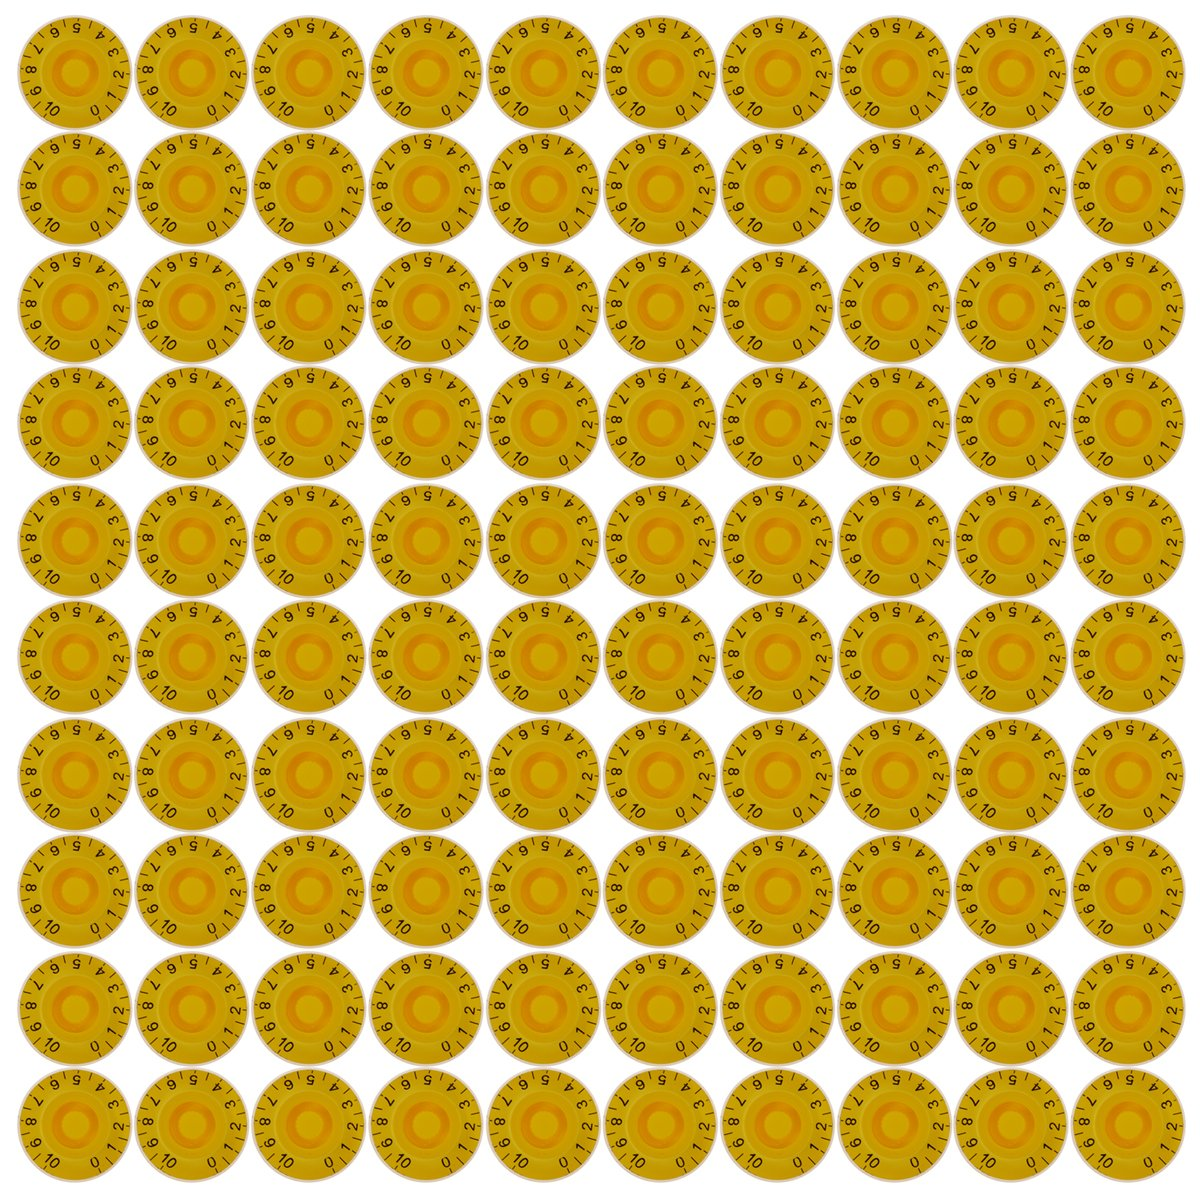 Kmise 100pcs Speed Control Knobs For Gibson Les Paul Electric Guitar Parts Anticlockwise Yellow